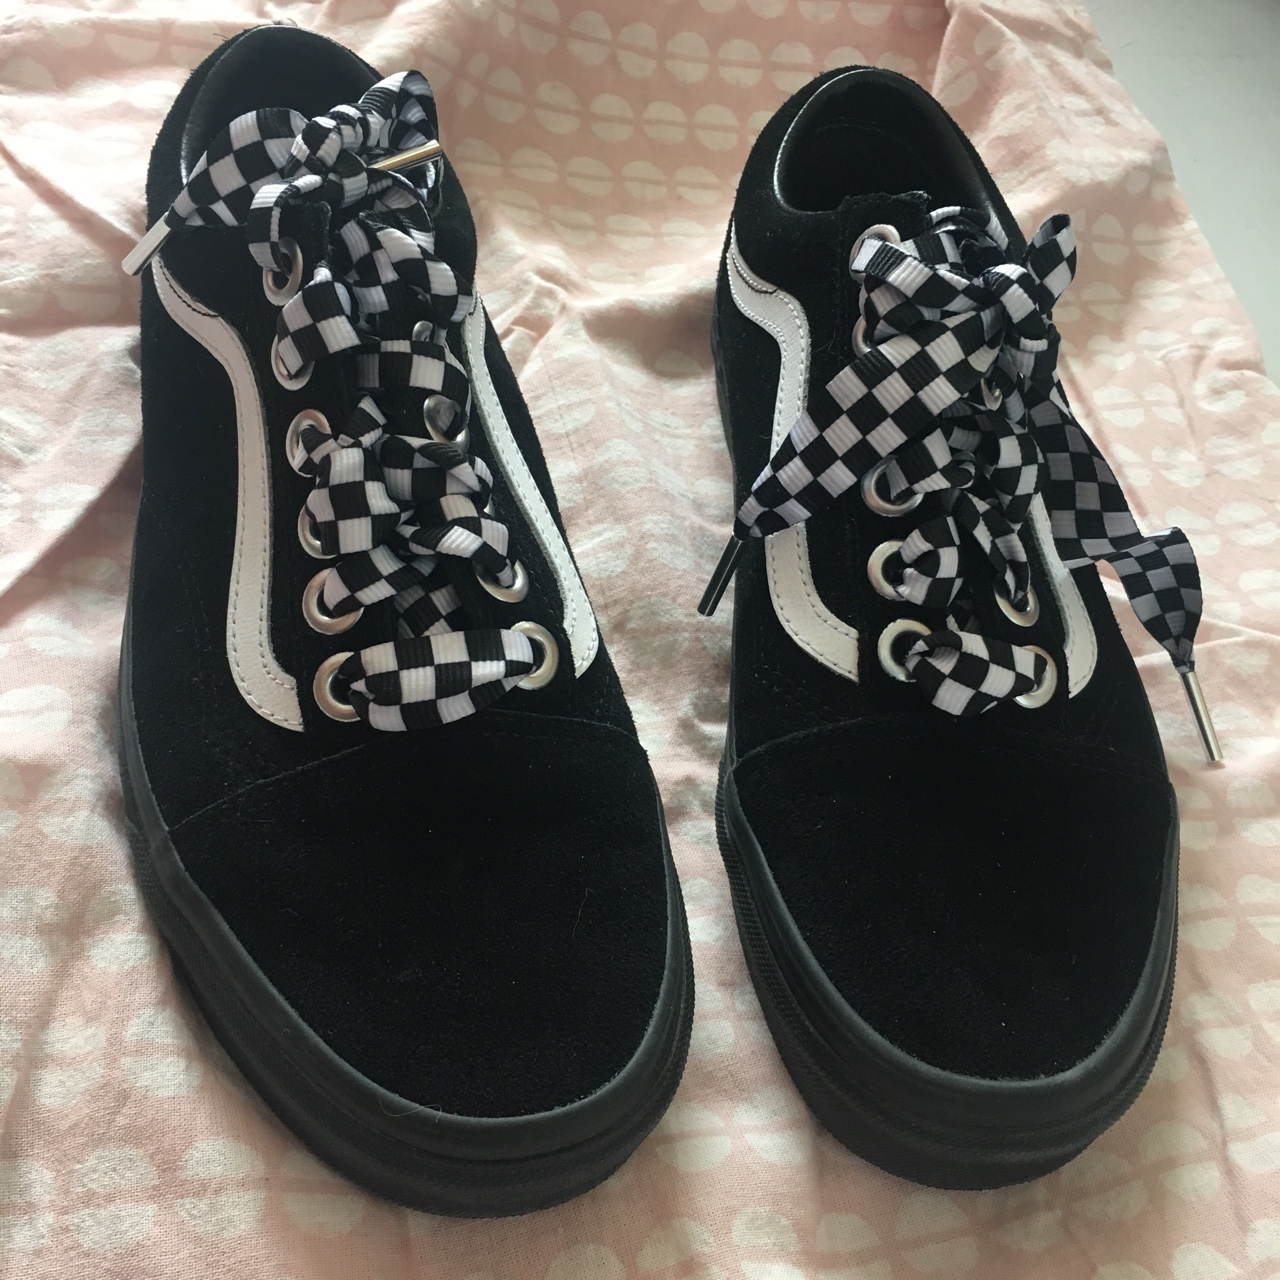 black and white checkered vans laced